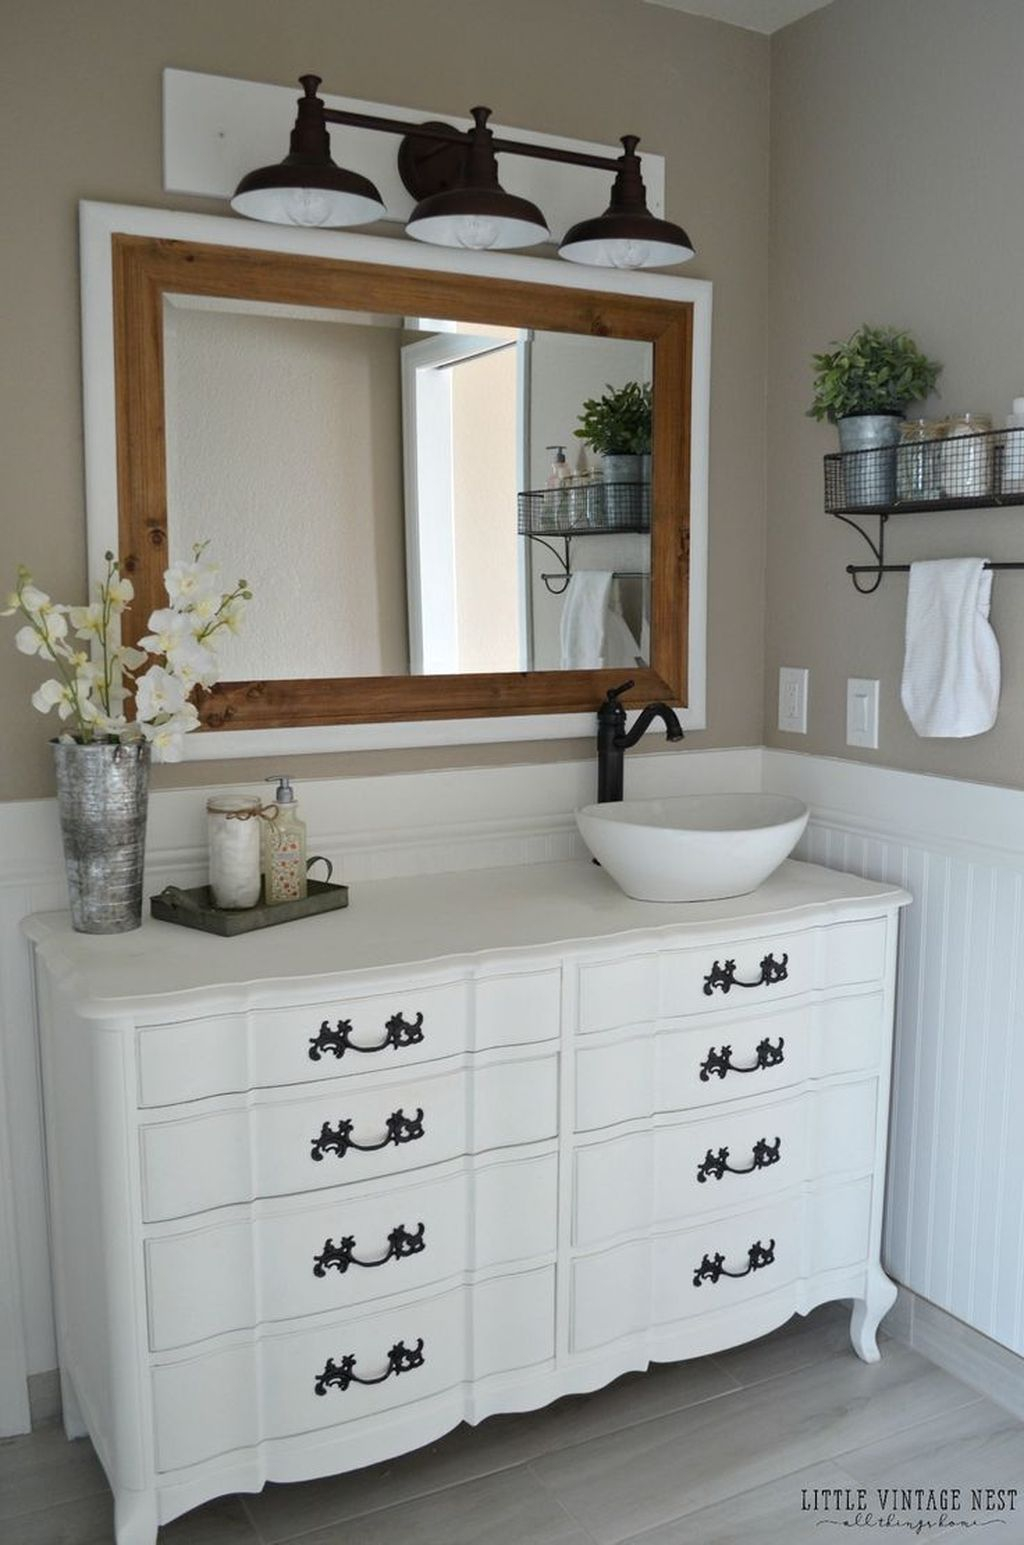 Inspiring Rustic Bathroom Vanity Remodel Ideas 24